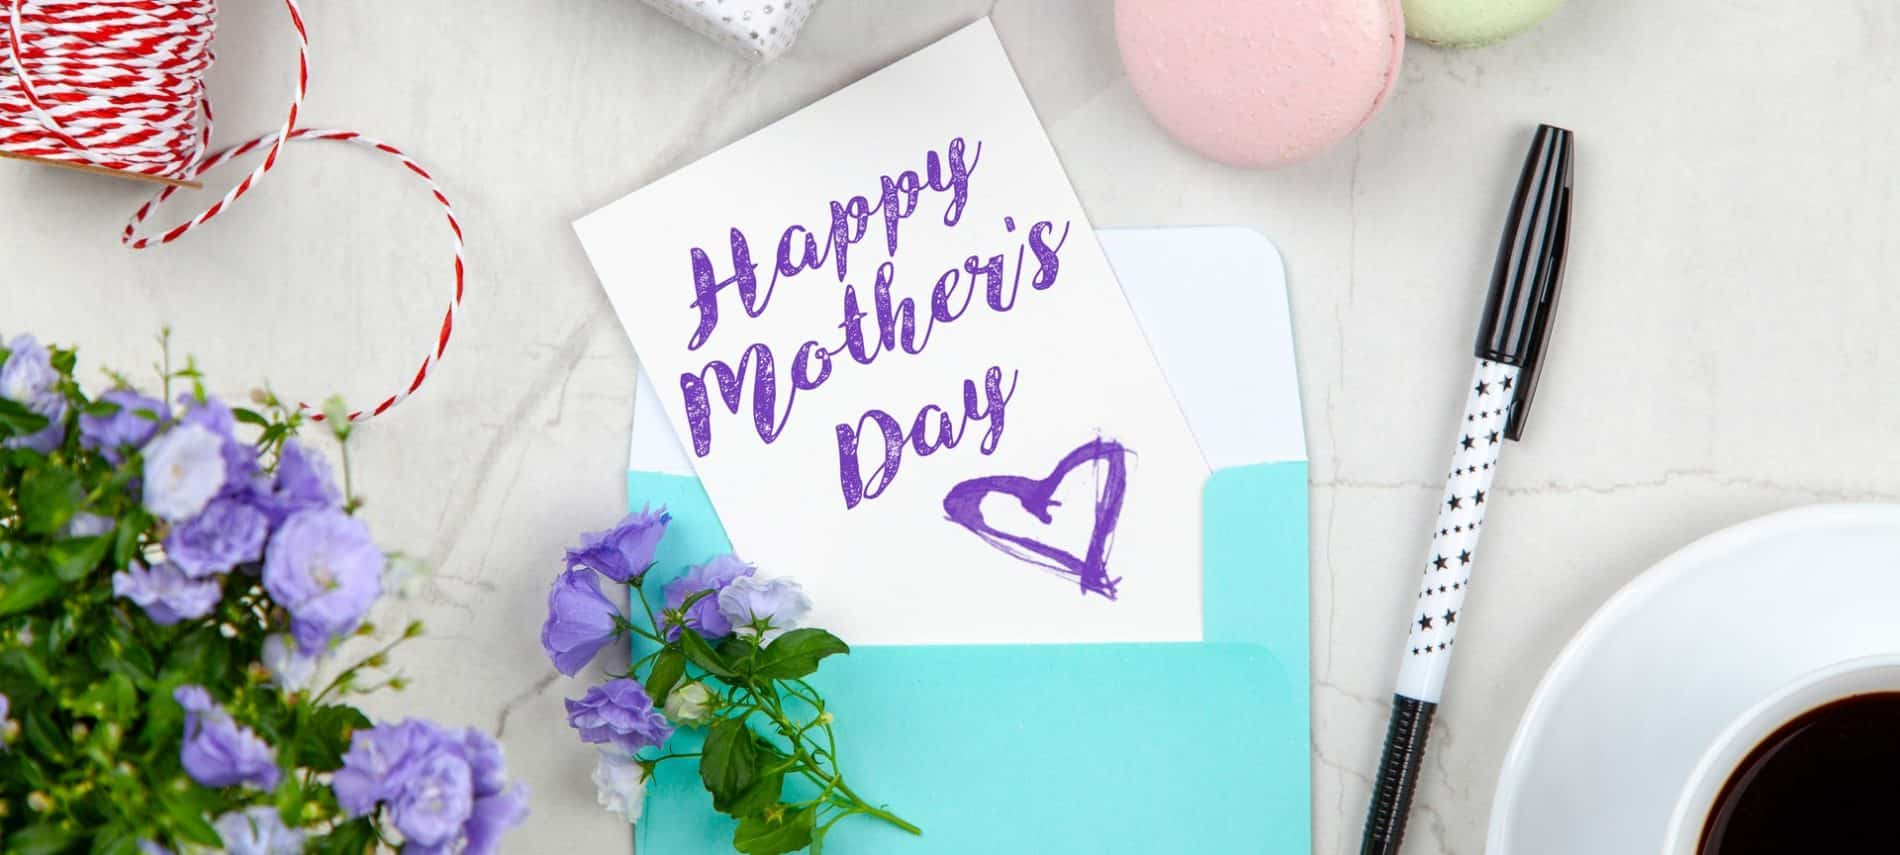 "card sticking out of a blue envelope with the words ""Happy Mother's Day"" written on it sitting on a table with flowers, a gift box, and macarons"